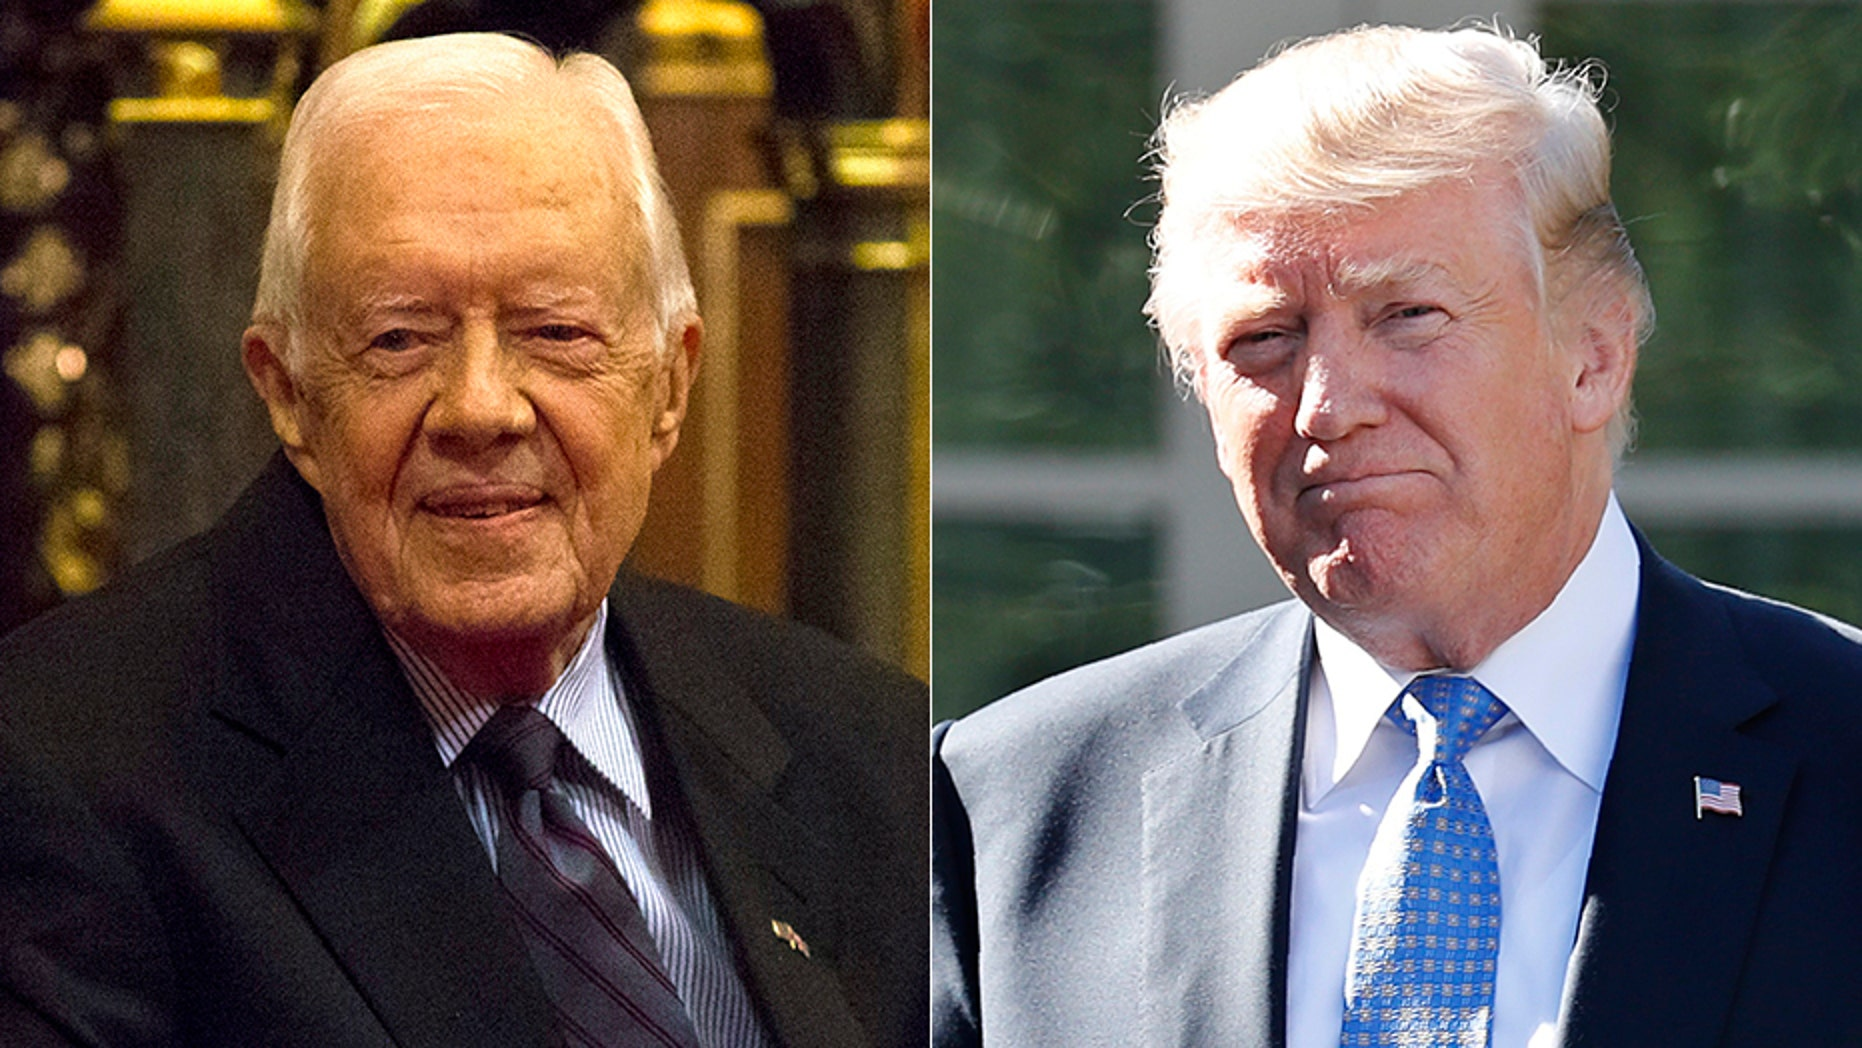 Former President Jimmy Carter says the media have been tougher on President Trump than any other president he can remember.